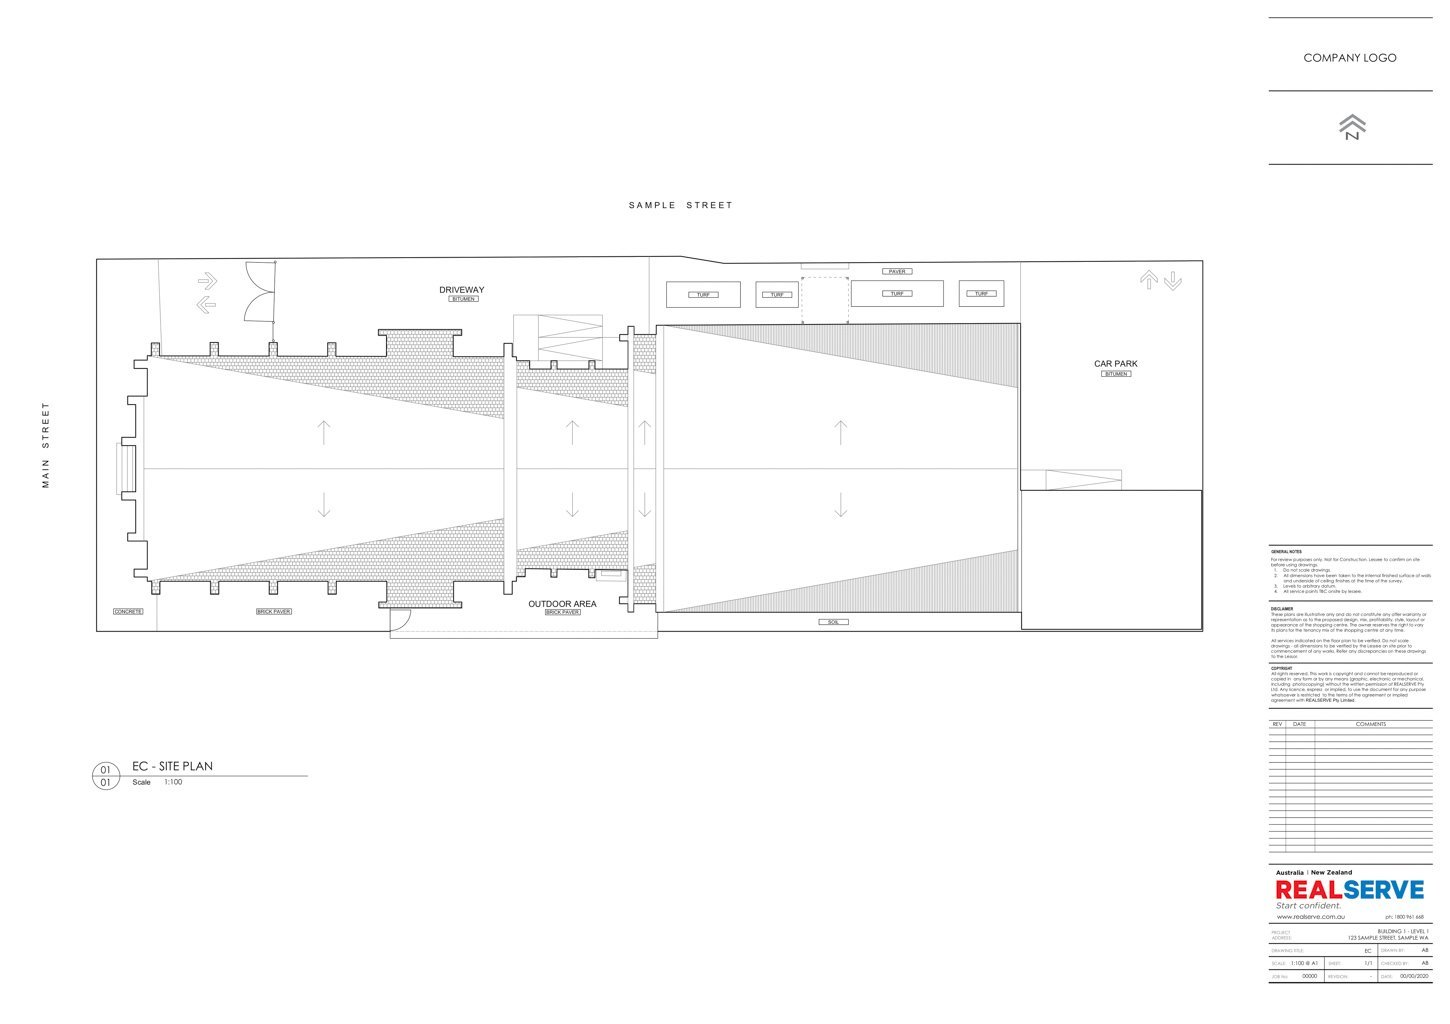 A SAMPLE OF AN EXISTING CONDITIONS SITE PLAN FOR A COMMERCIAL PROPERTY BY REALSERVE